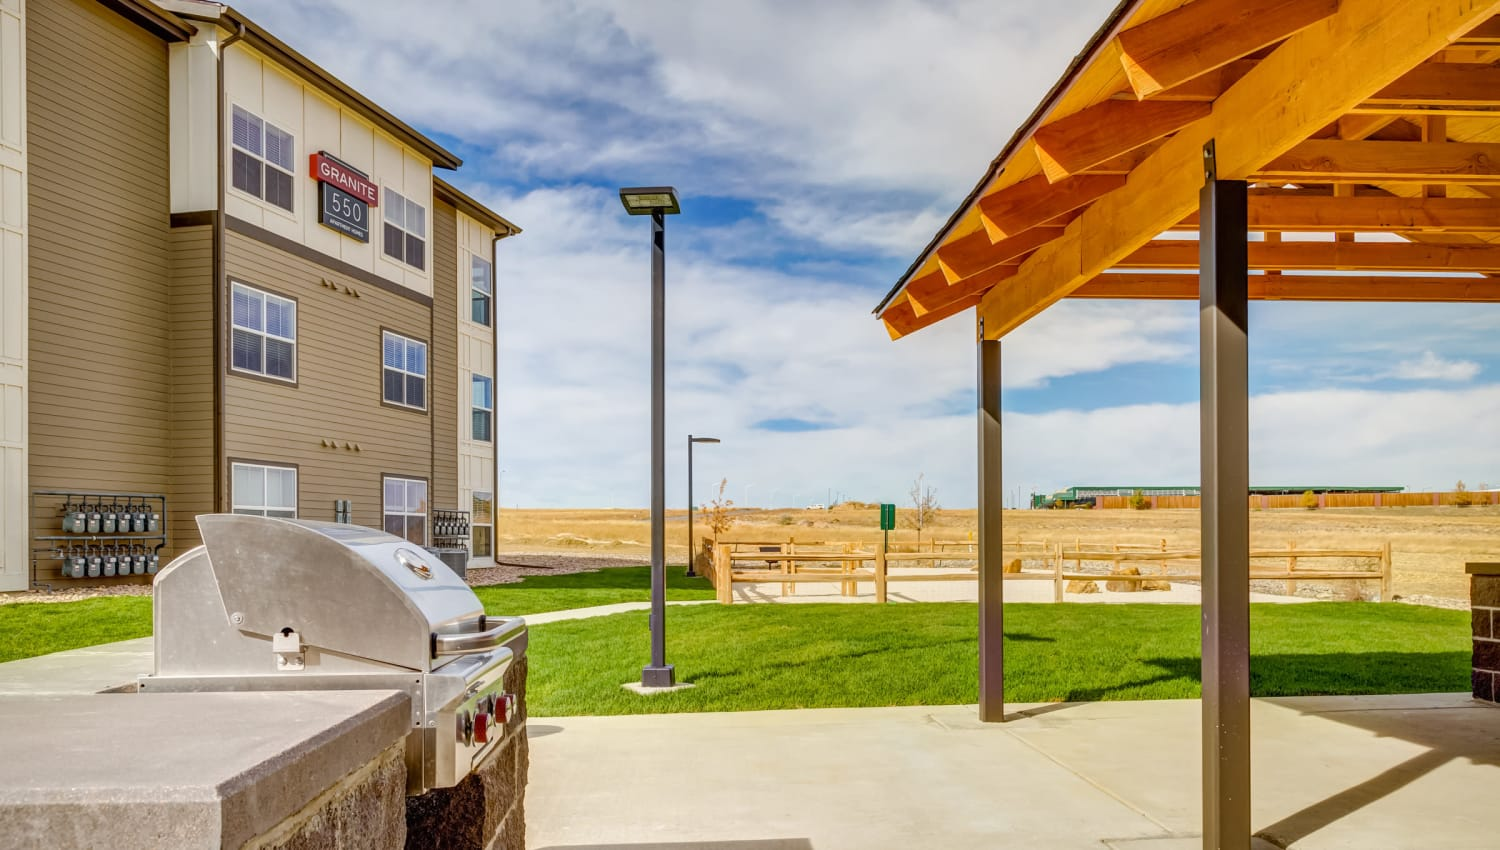 Green grass for you and your pets to play on near the barbecue area at Granite 550 in Casper, Wyoming